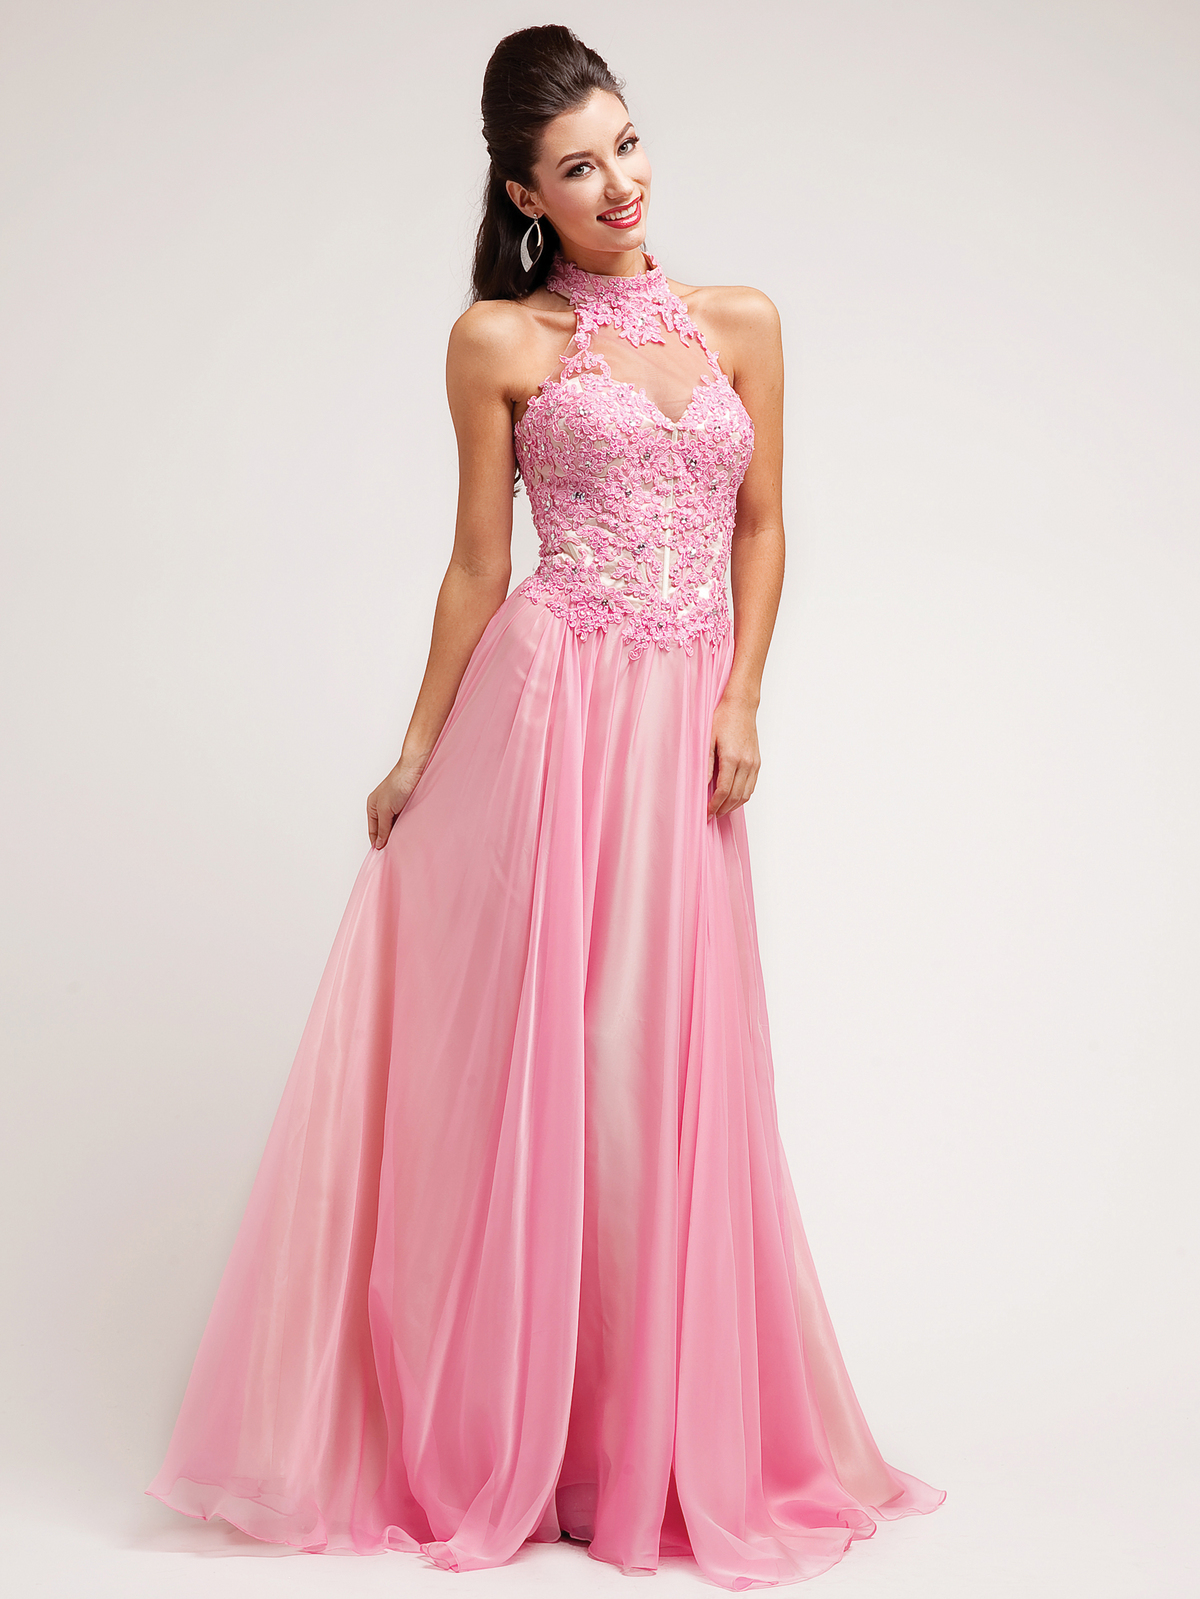 Floral Embroidered Bodice Halter Prom Dress | Sung Boutique L.A.